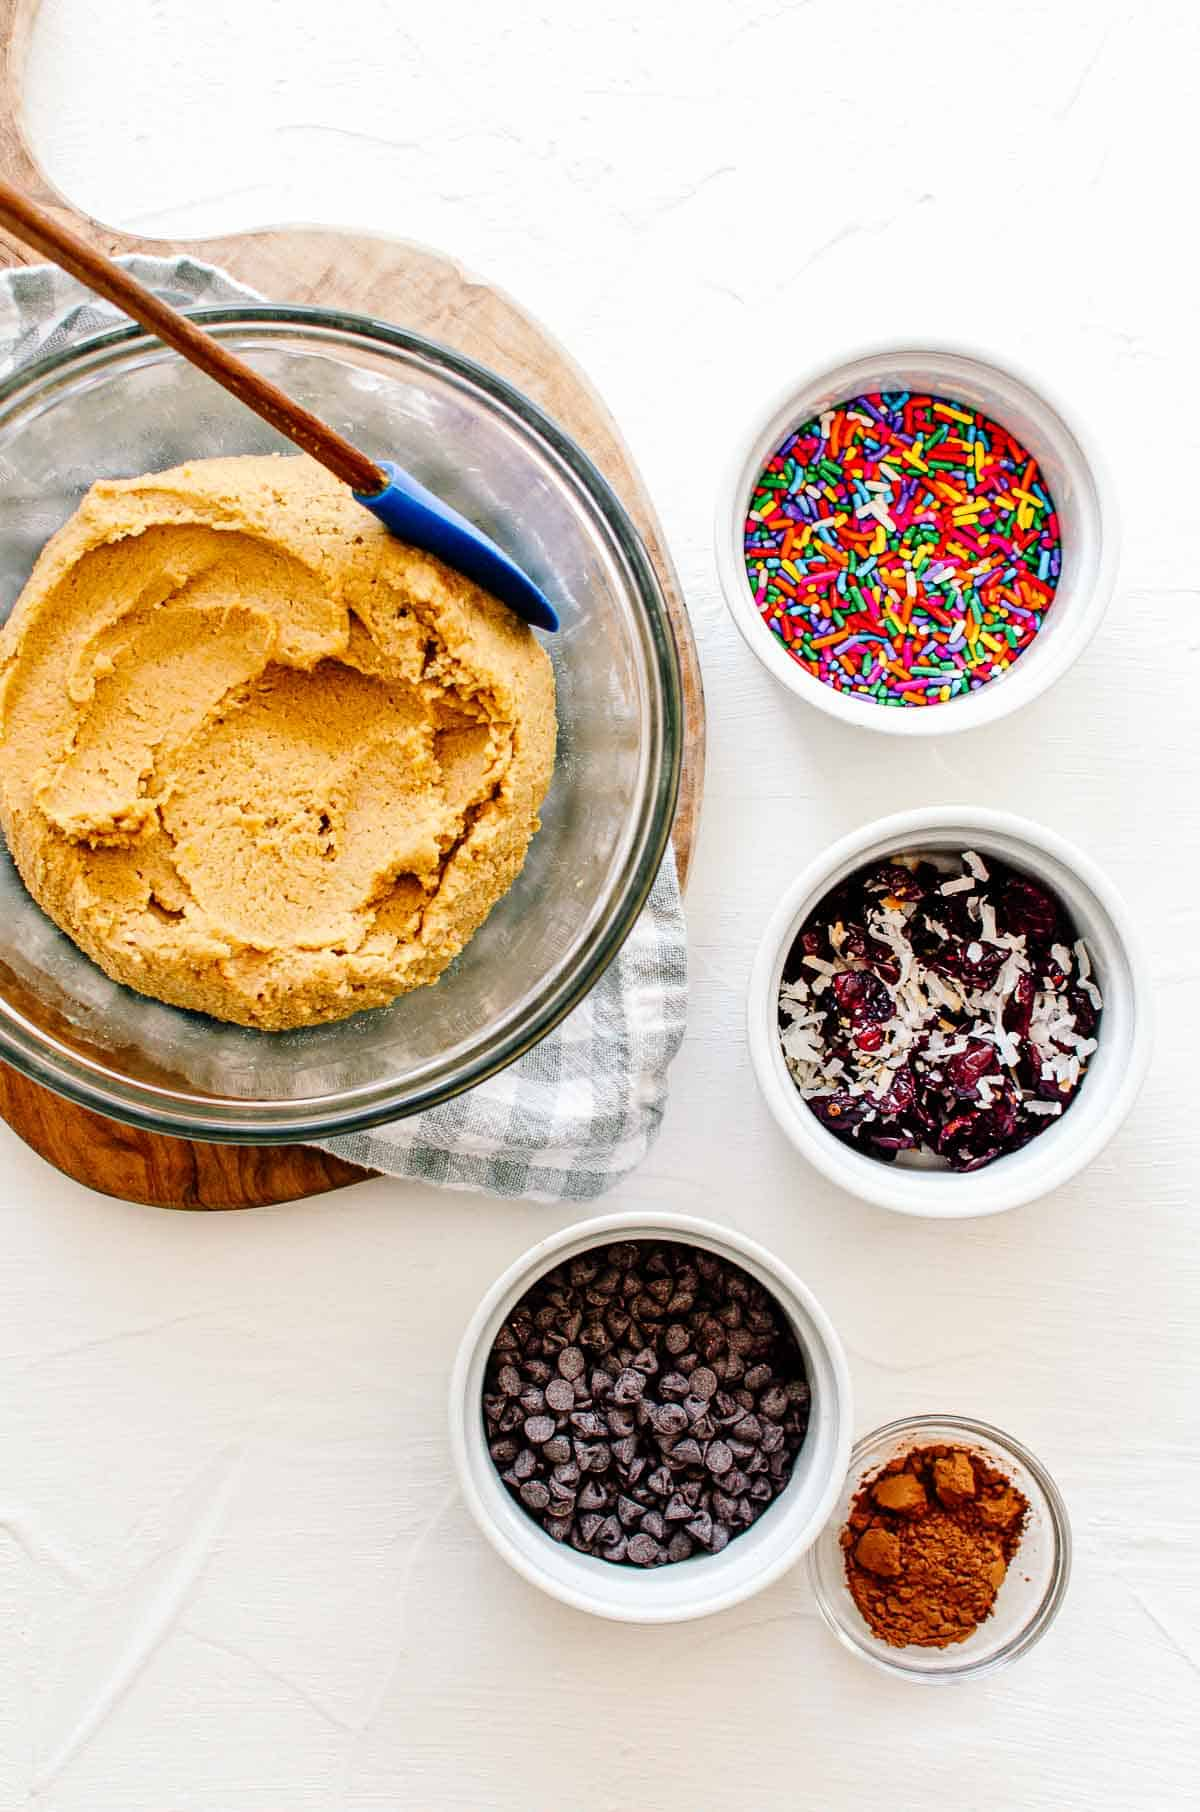 Chickpea cookie dough in a bowl with several add ins portioned on the side including chocolate chips, cocoa powder, cranberries and coconut, and sprinkles.